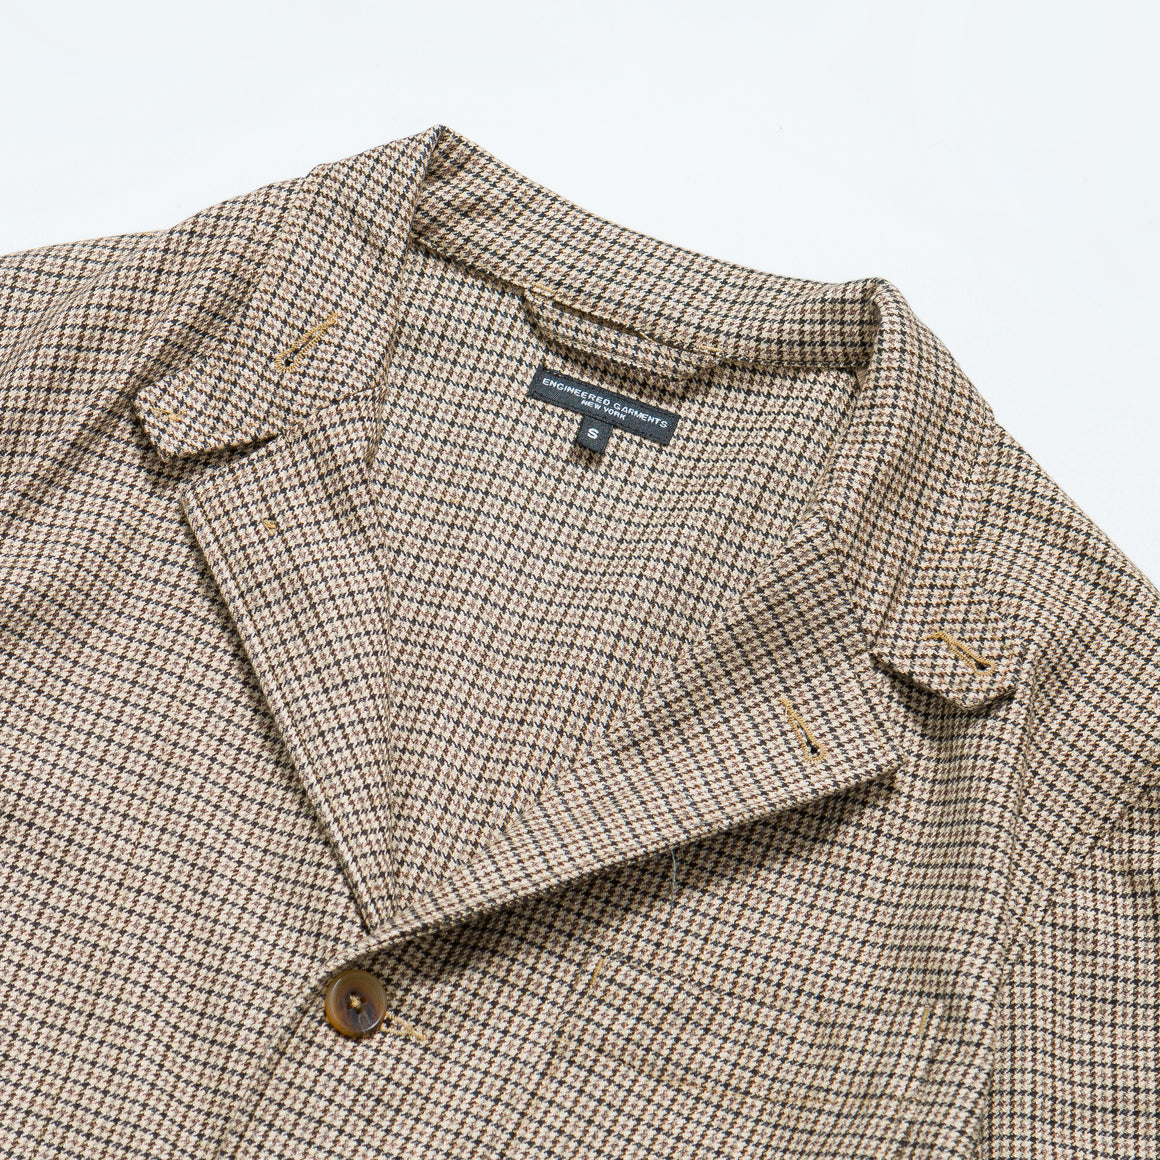 Engineered Garments - Loiter Jacket - Brown Wool Poly Gunclub - Up There